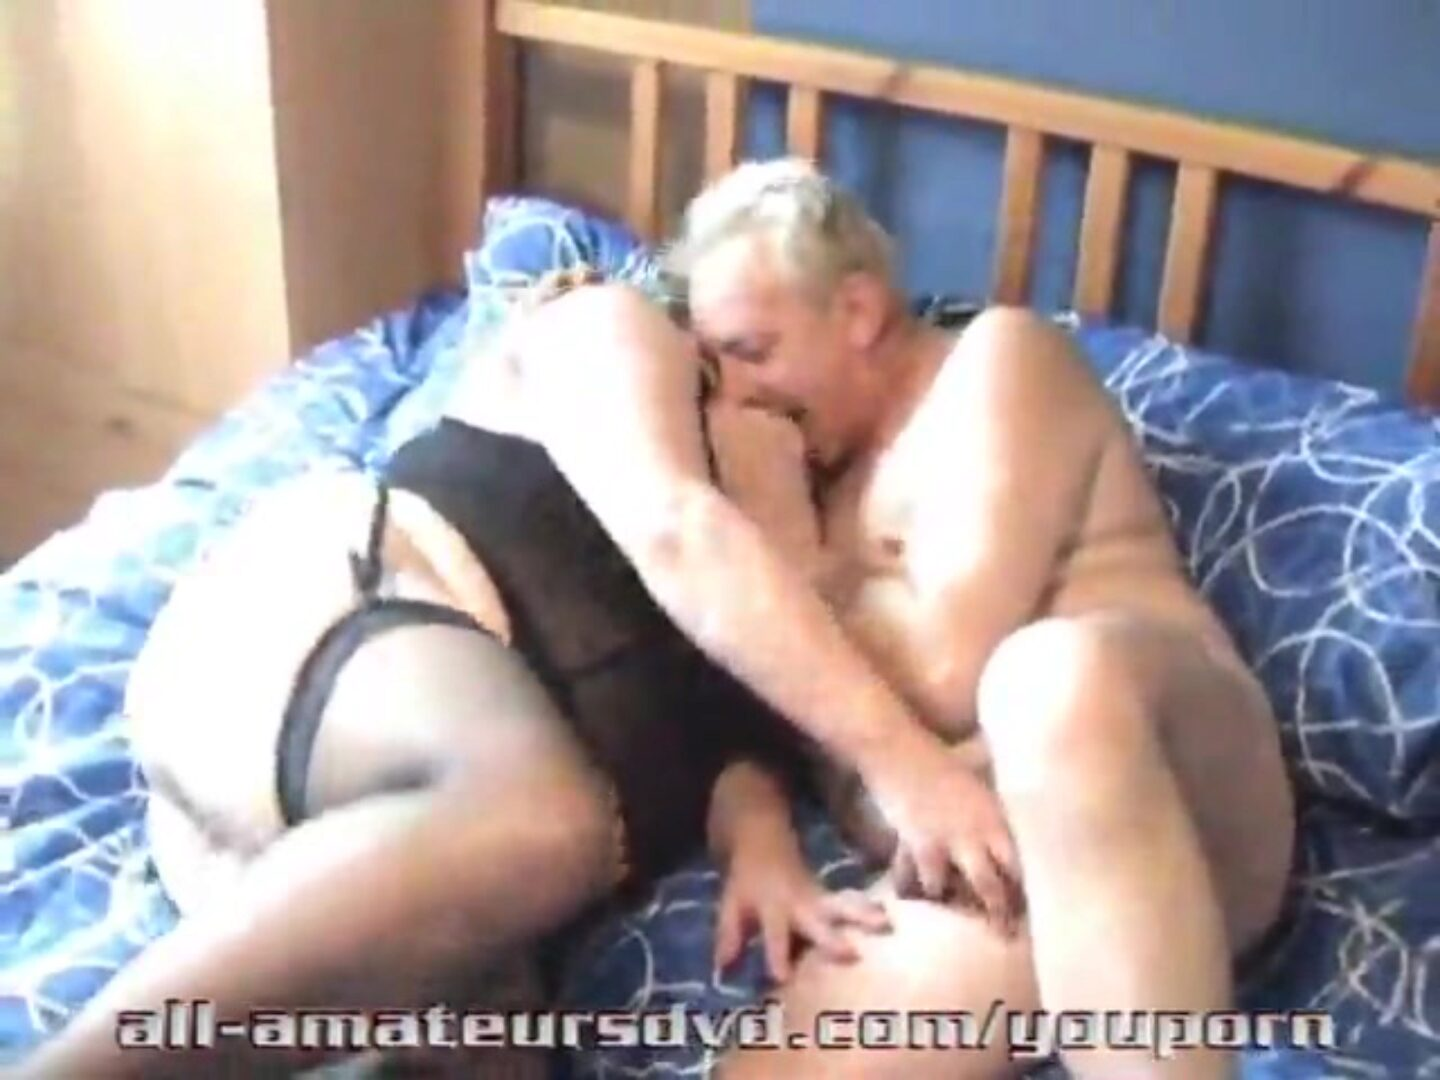 Real Homemade UK dilettante older older pair British mature pair get it on for punches in front of the camera.